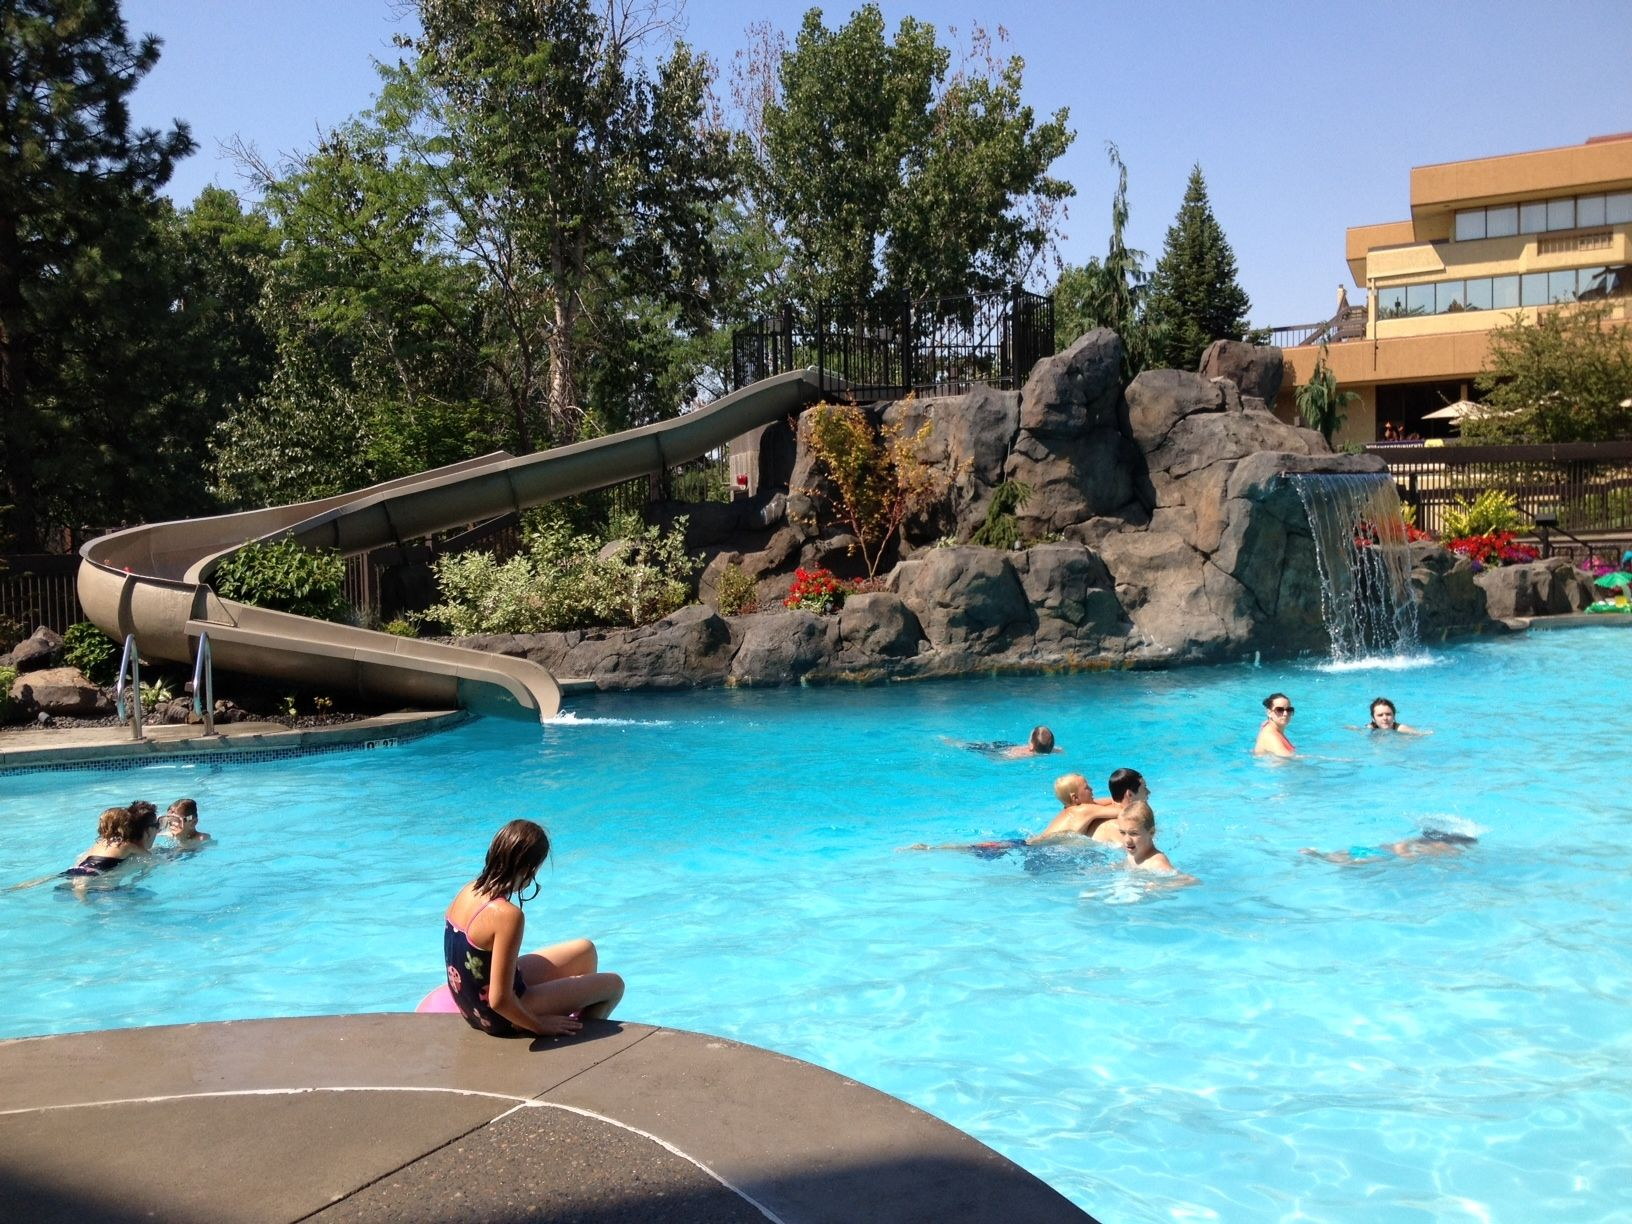 Red Lion Hotel At The Park Has An Awesome Lagoon Pool To Swim In While Staying At The Hotel